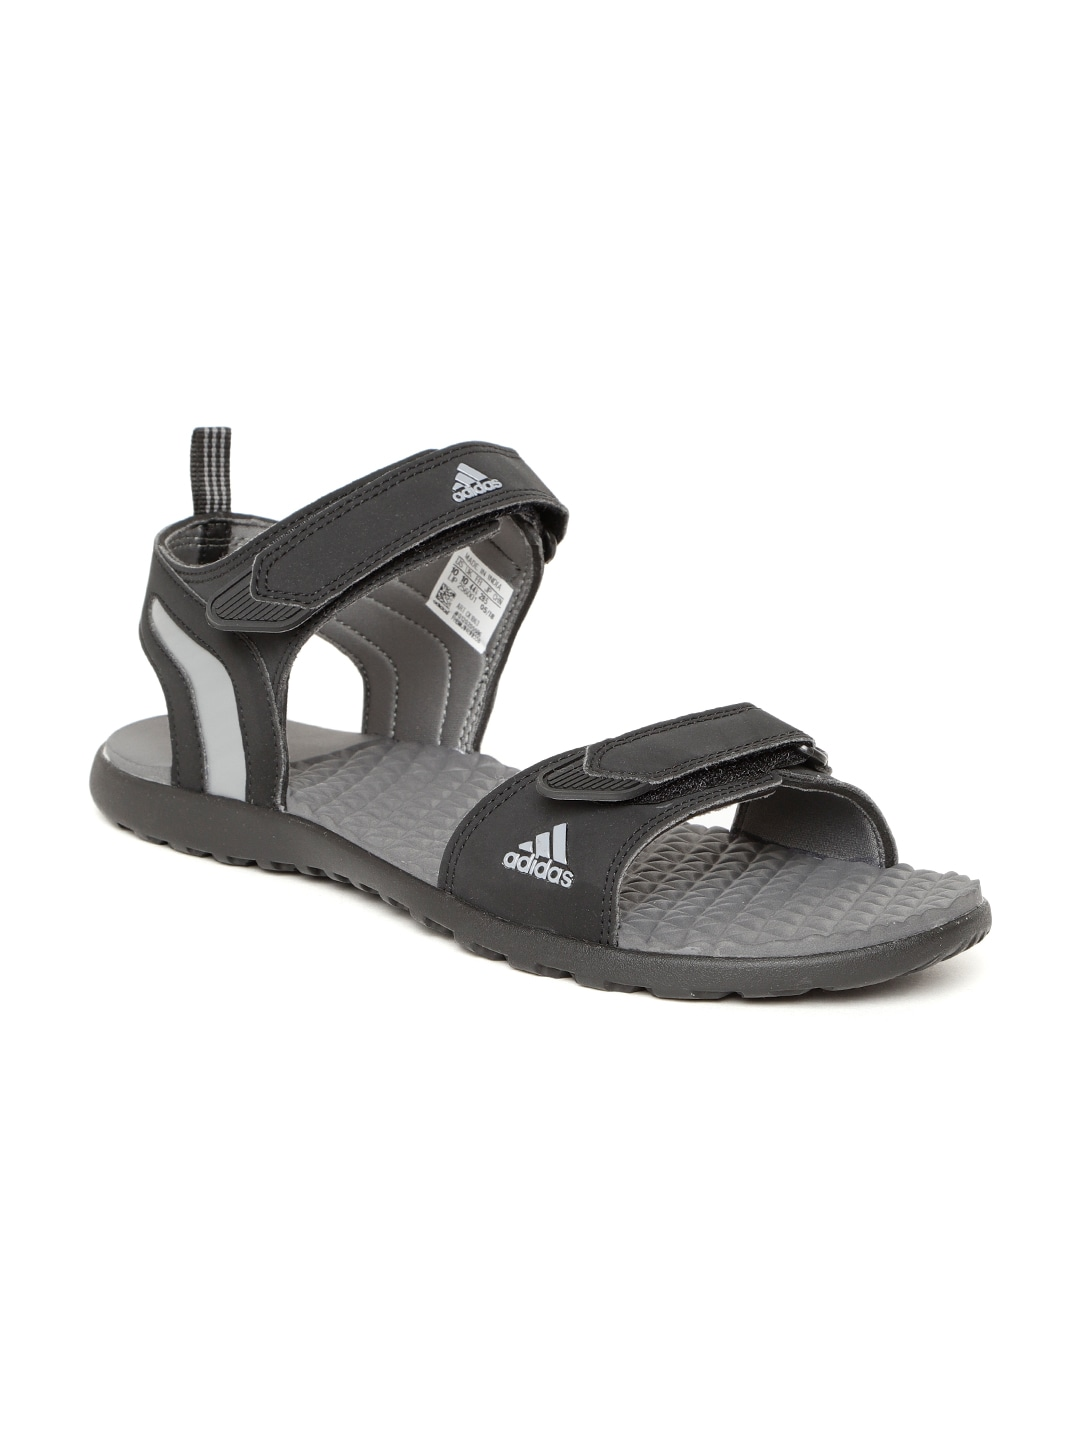 533a92771c4b Adidas Men Sports Sandal - Buy Adidas Men Sports Sandal online in India